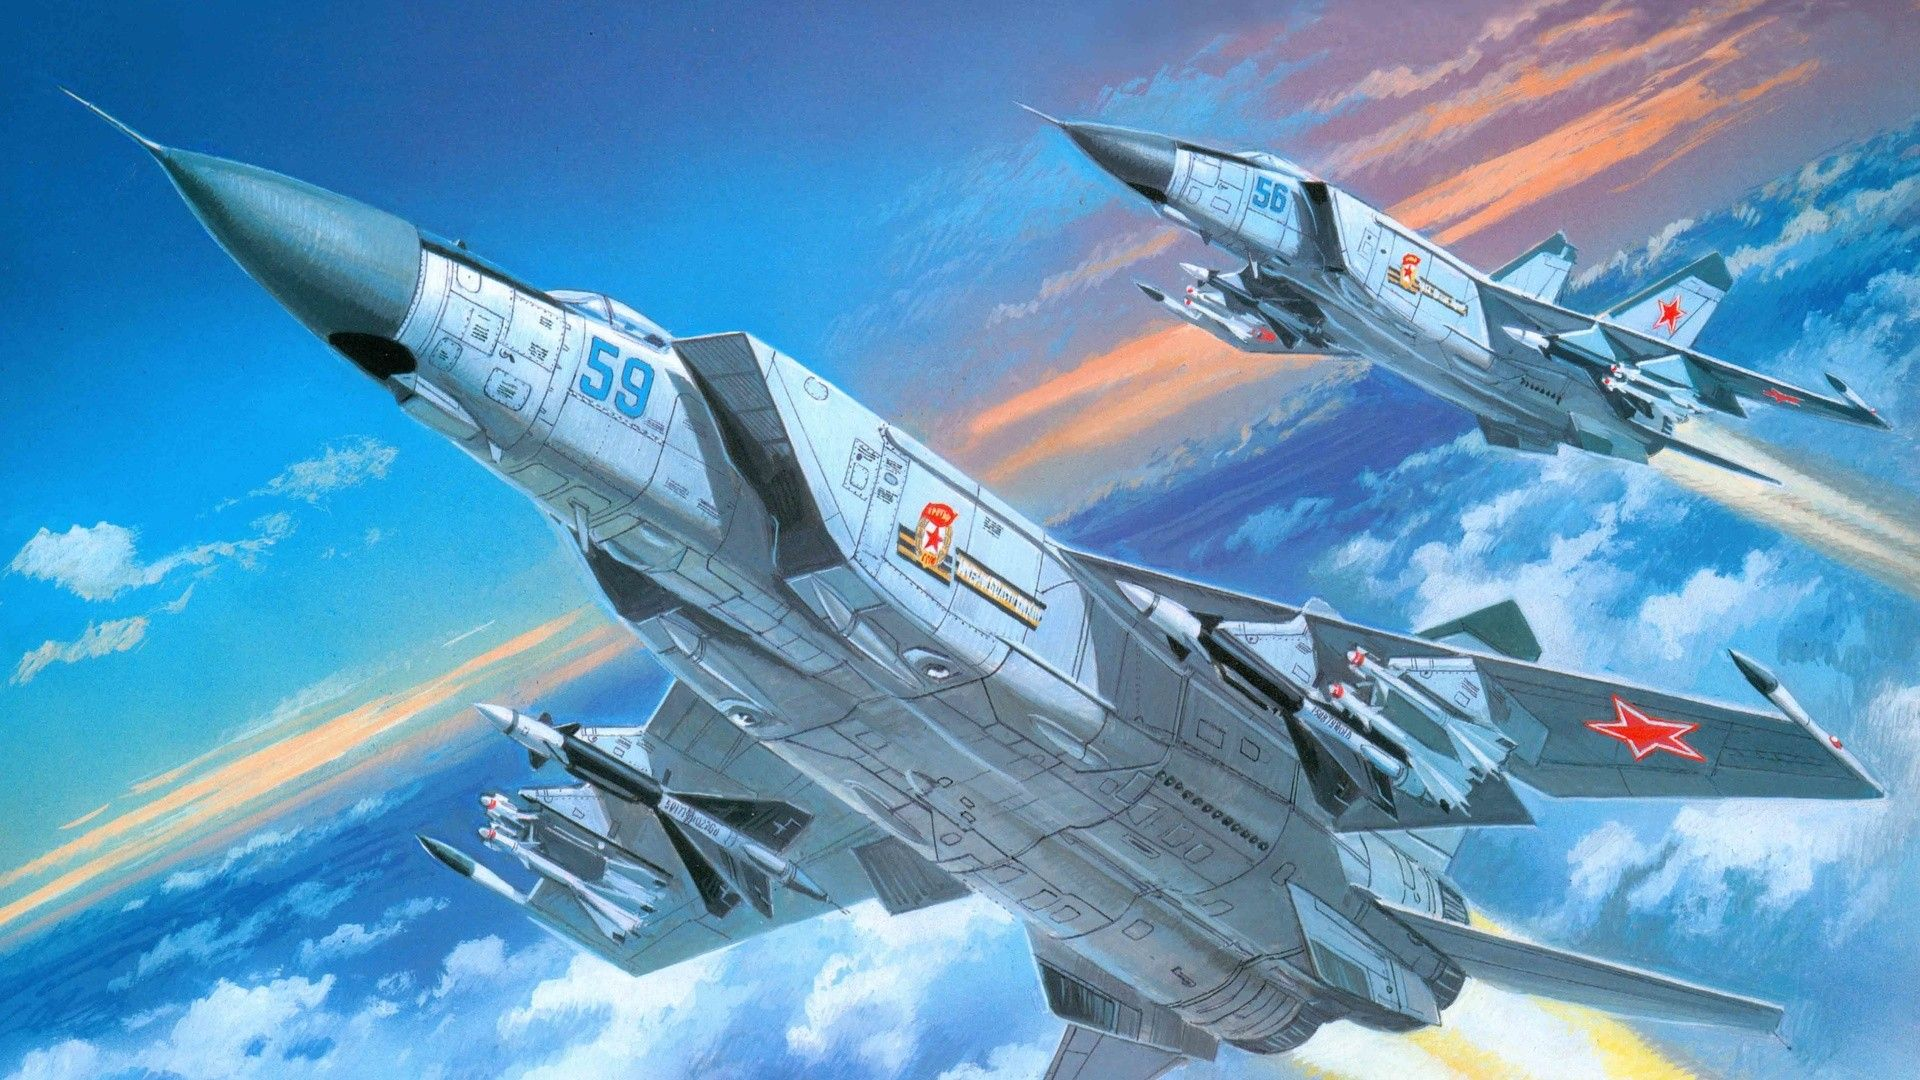 MiG 25 FoxBat Airplane fighter Aircraft art Air fighter 1920x1080